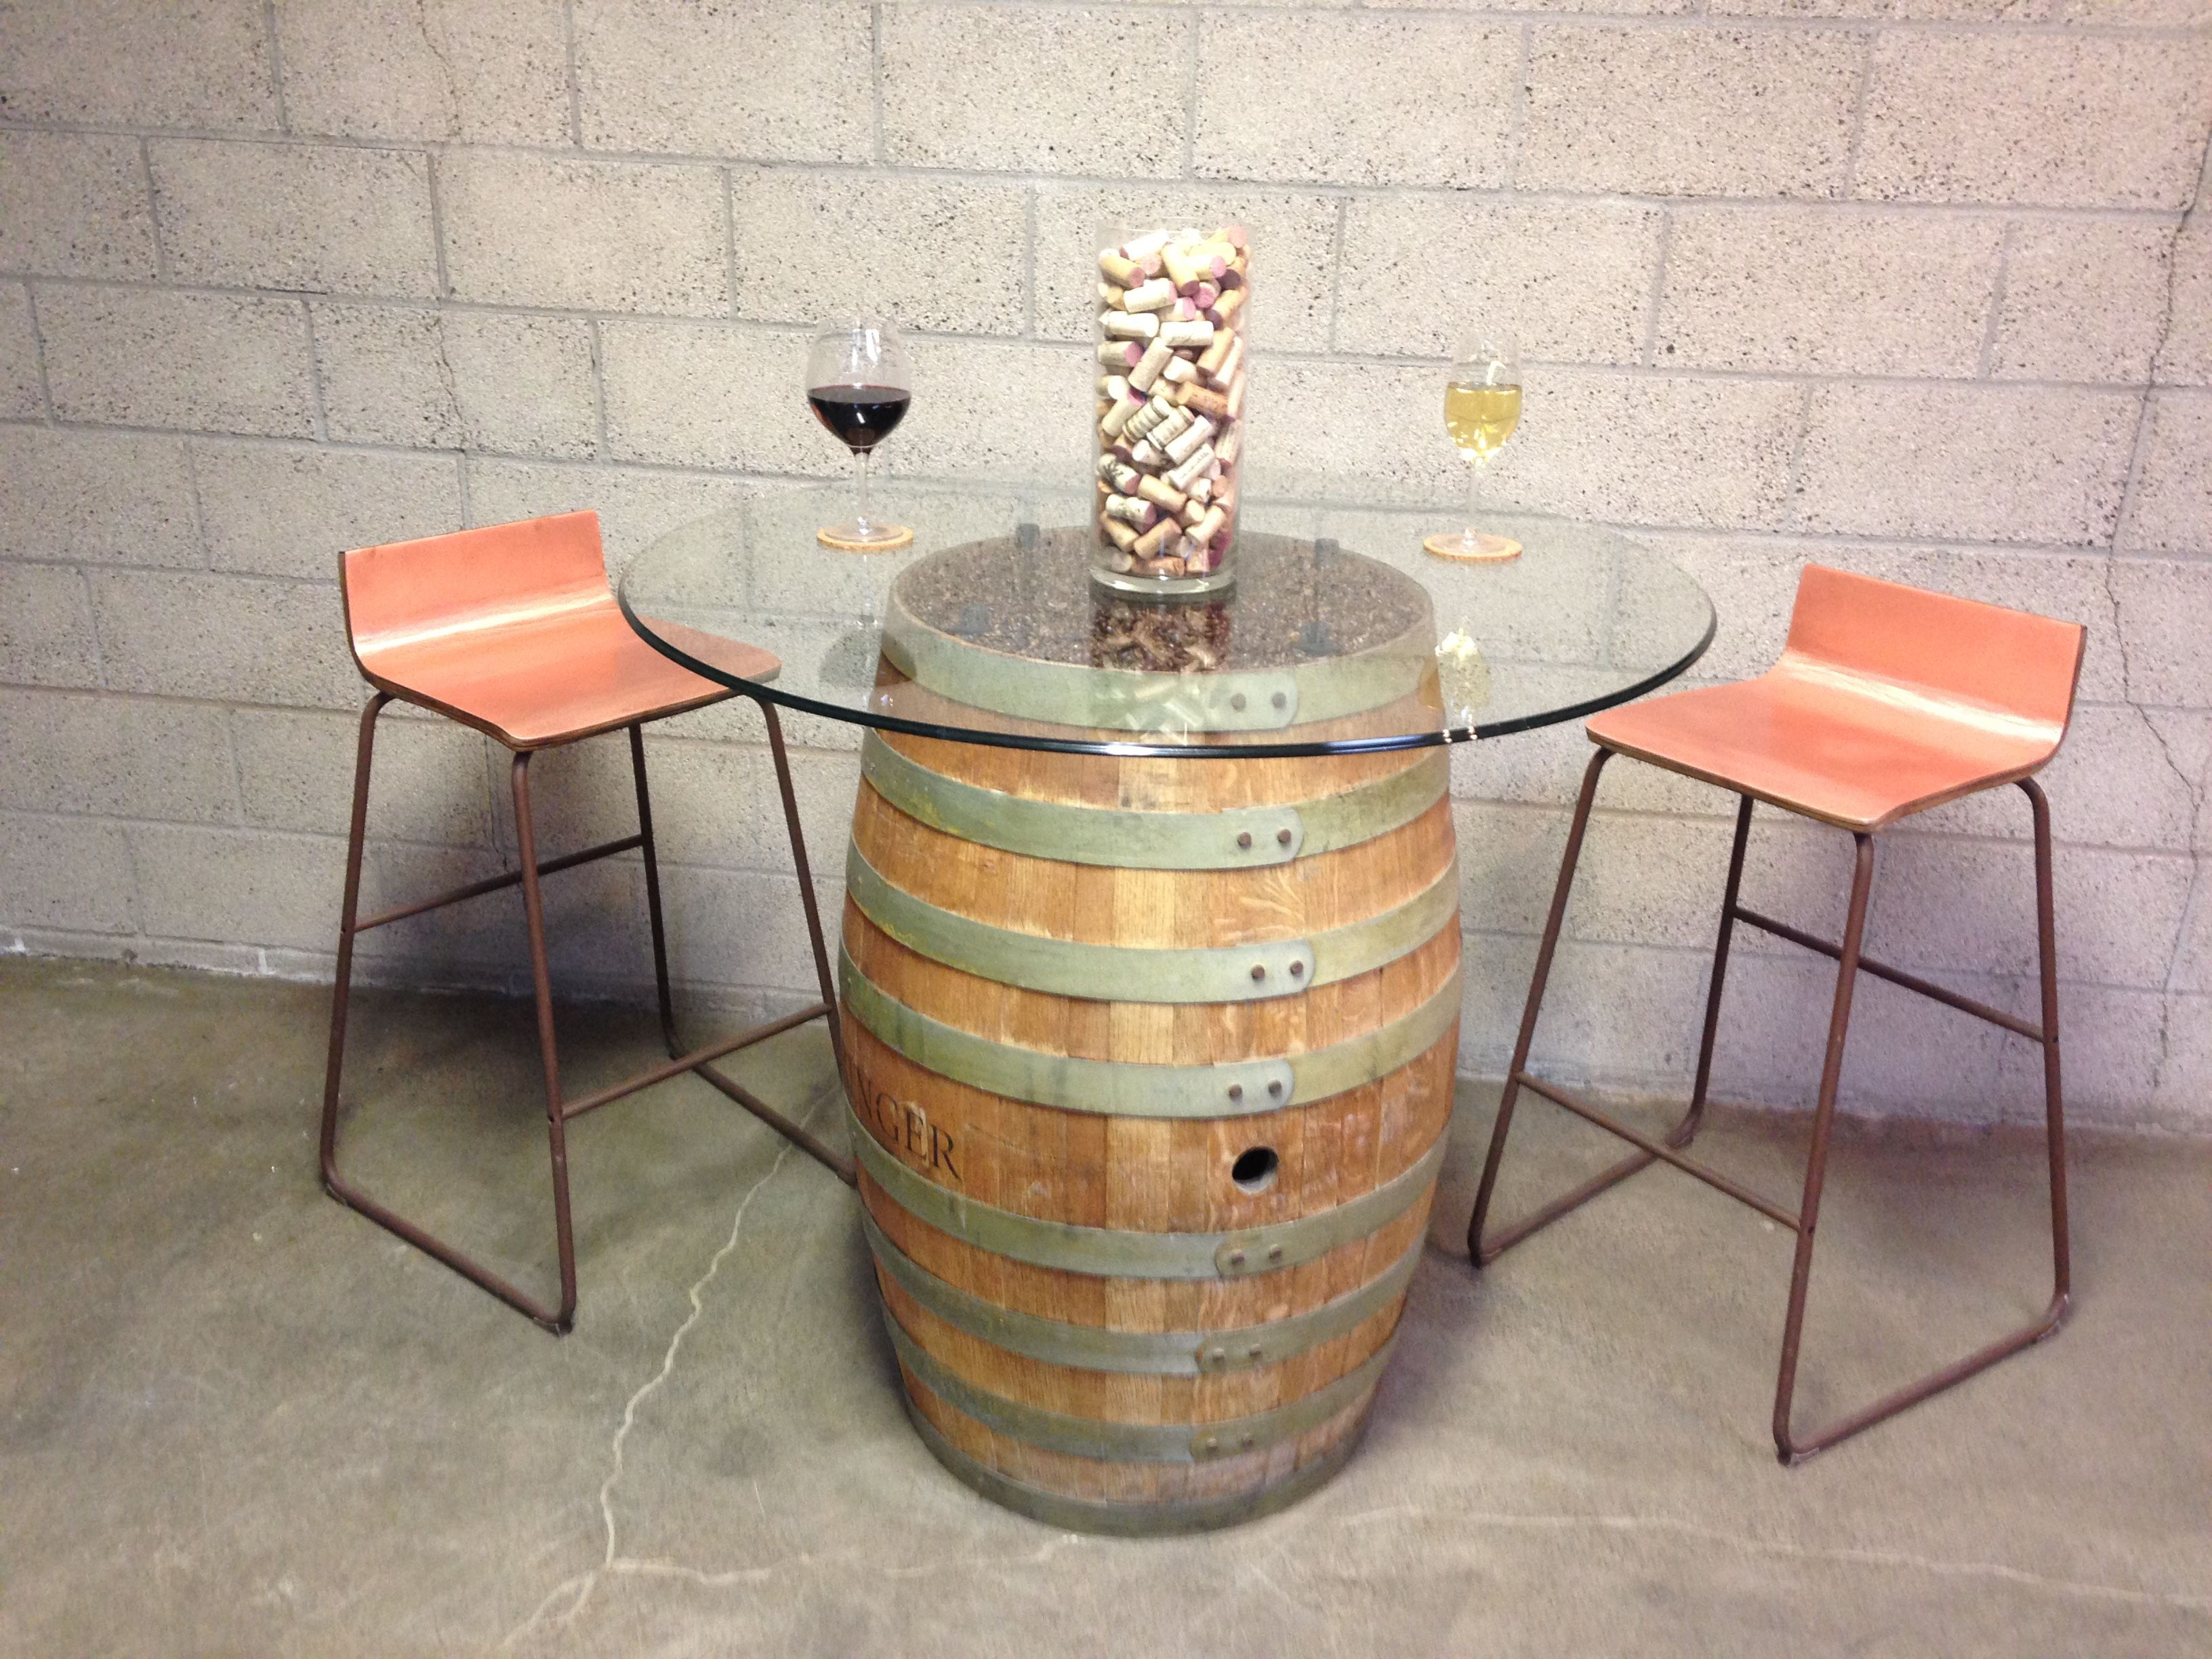 Kask  Authentic Wine Barrel Converted Into A Bistro Style Table,glass Top  Mounted On